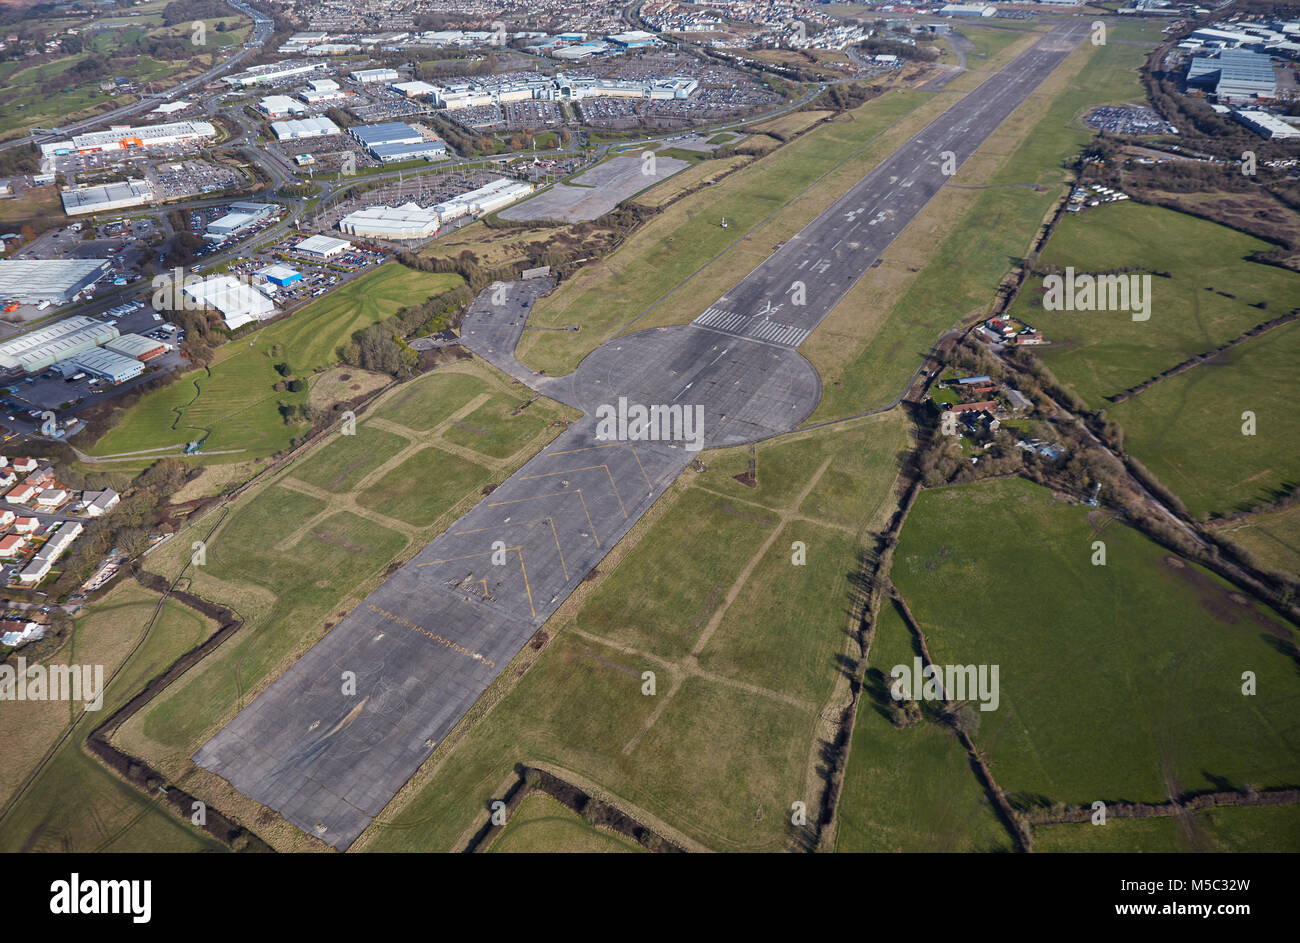 An aerial view of the former Filton Airfield, Bristol - Stock Image